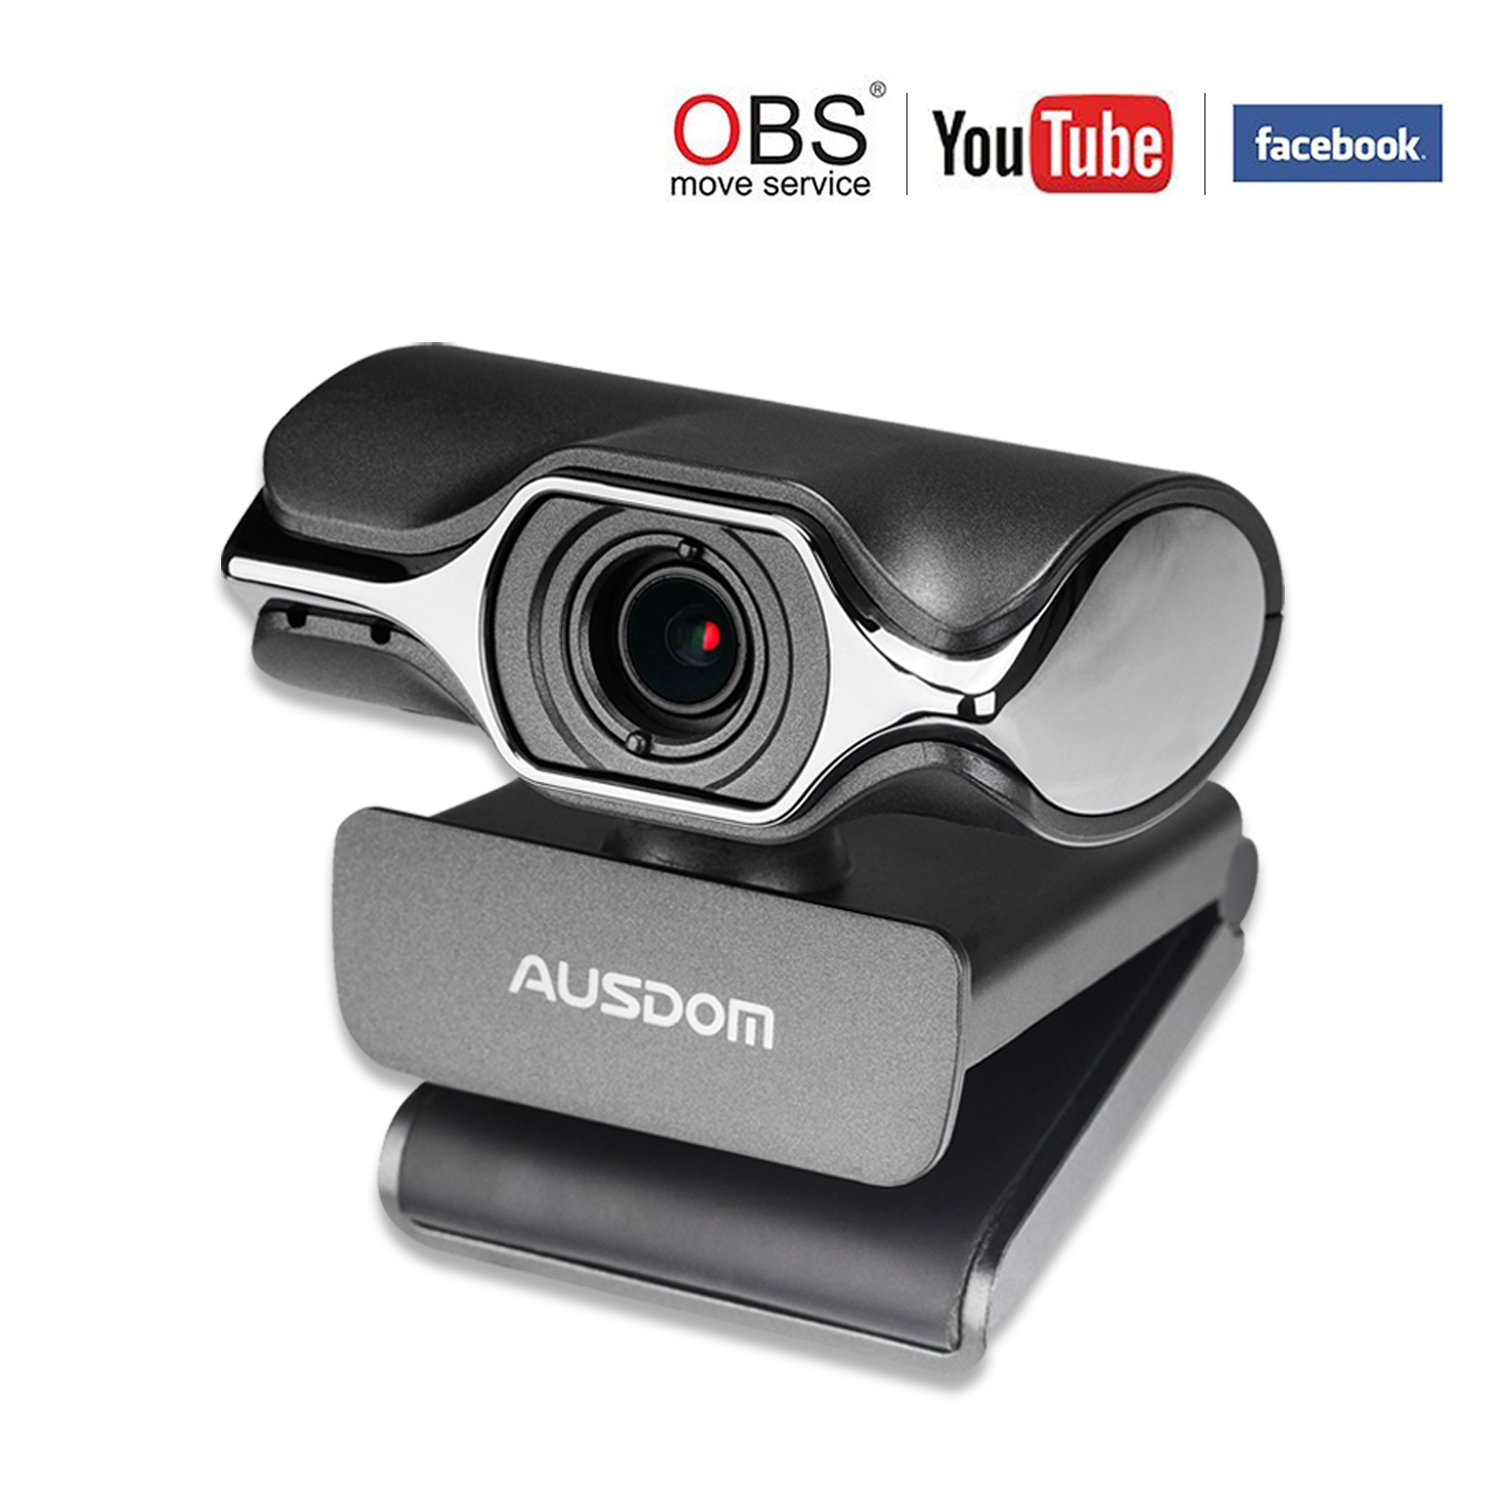 Webcam Streaming 1080P Ausdom Upgraded AW620 Pro Web Camera Desktop PC Laptop Computer Nosie Cancelling Microphone USB Plug Play Windows Mac Skype OBS Live Streaming YouTube Twitch